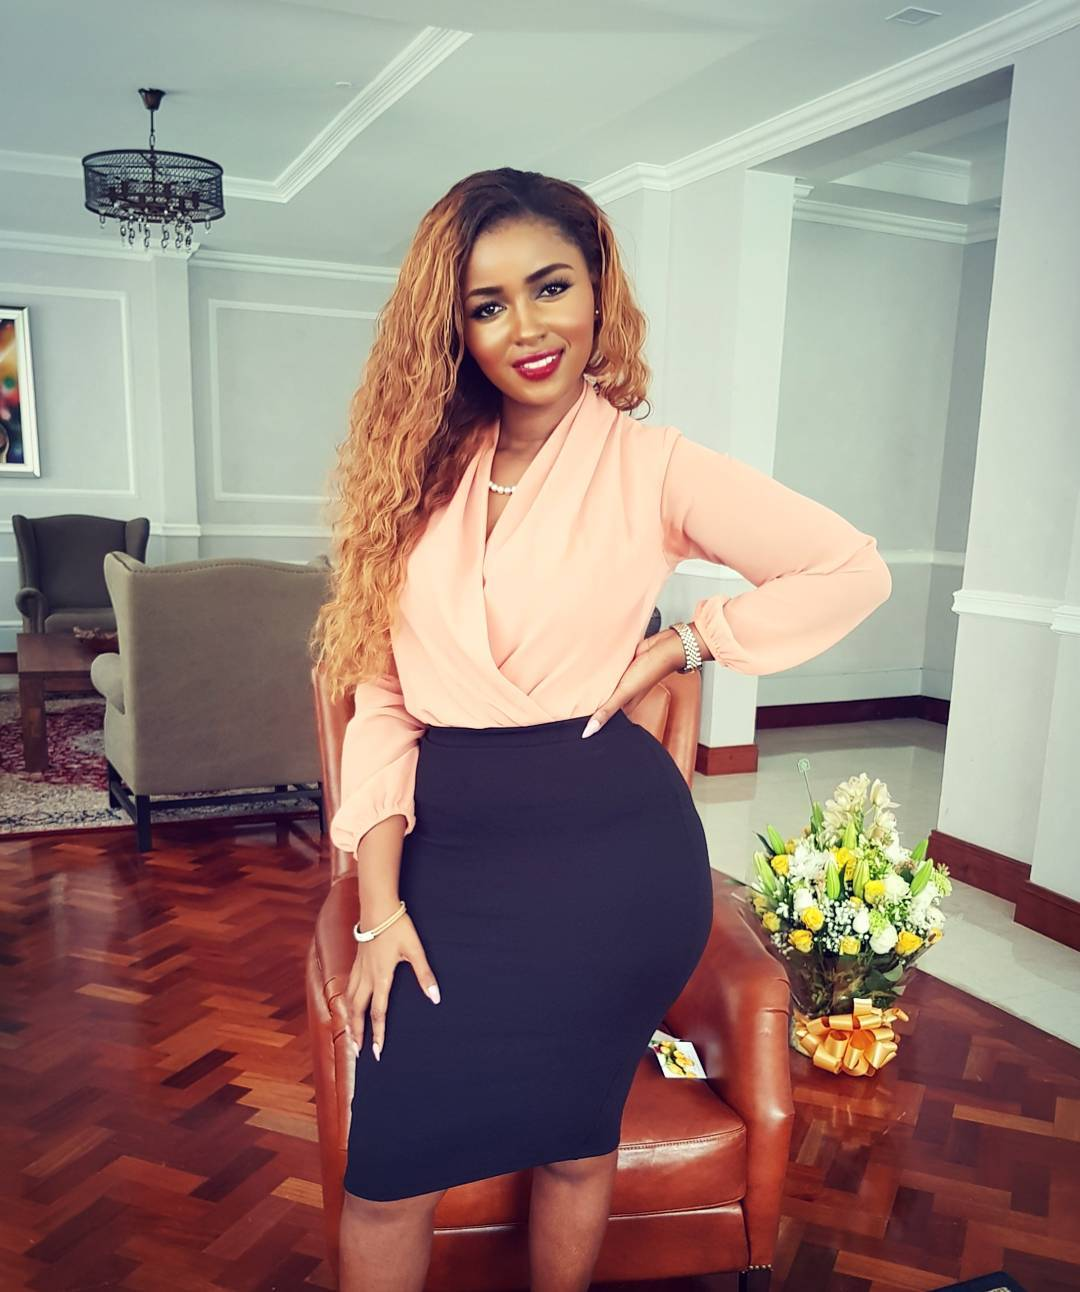 Drama As Anerlisa Mungai Fights With A Woman Over Claims She Stole Her Husband